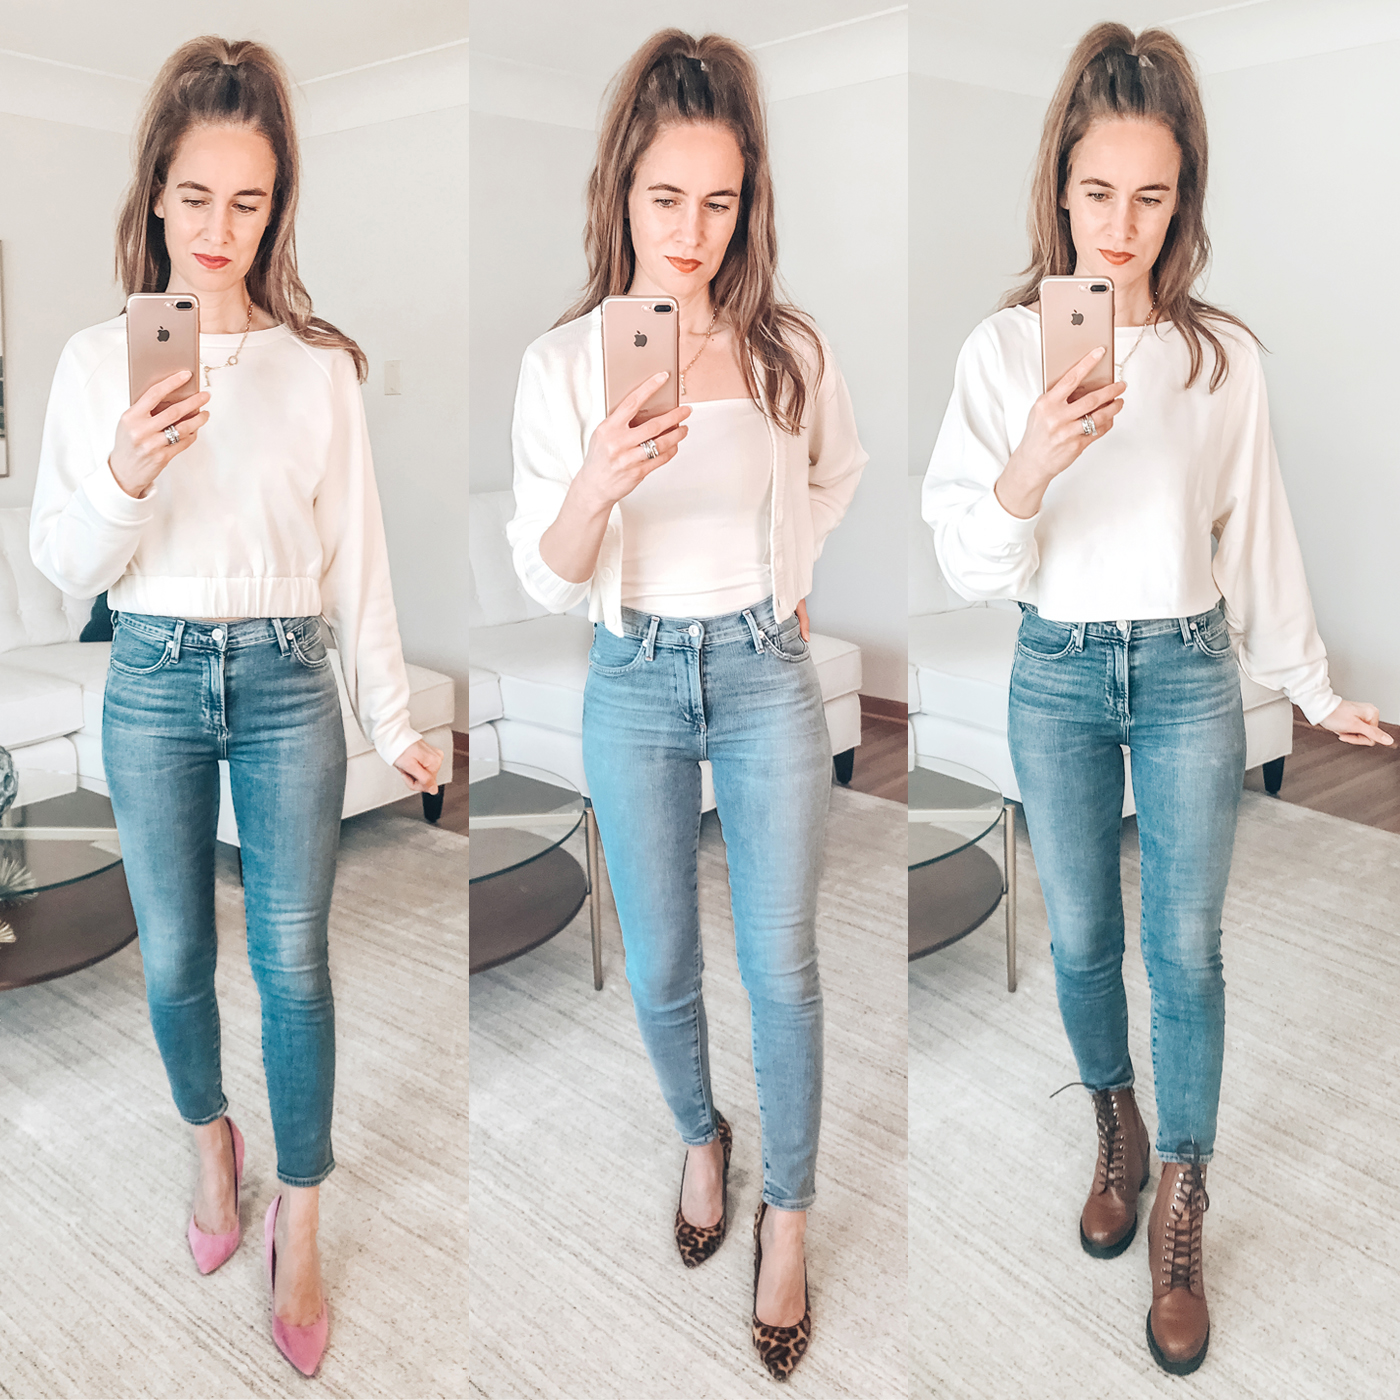 white sweatshirt, cardigan set, skinny jeans, style blogger try on session, leopard heels, combat boots